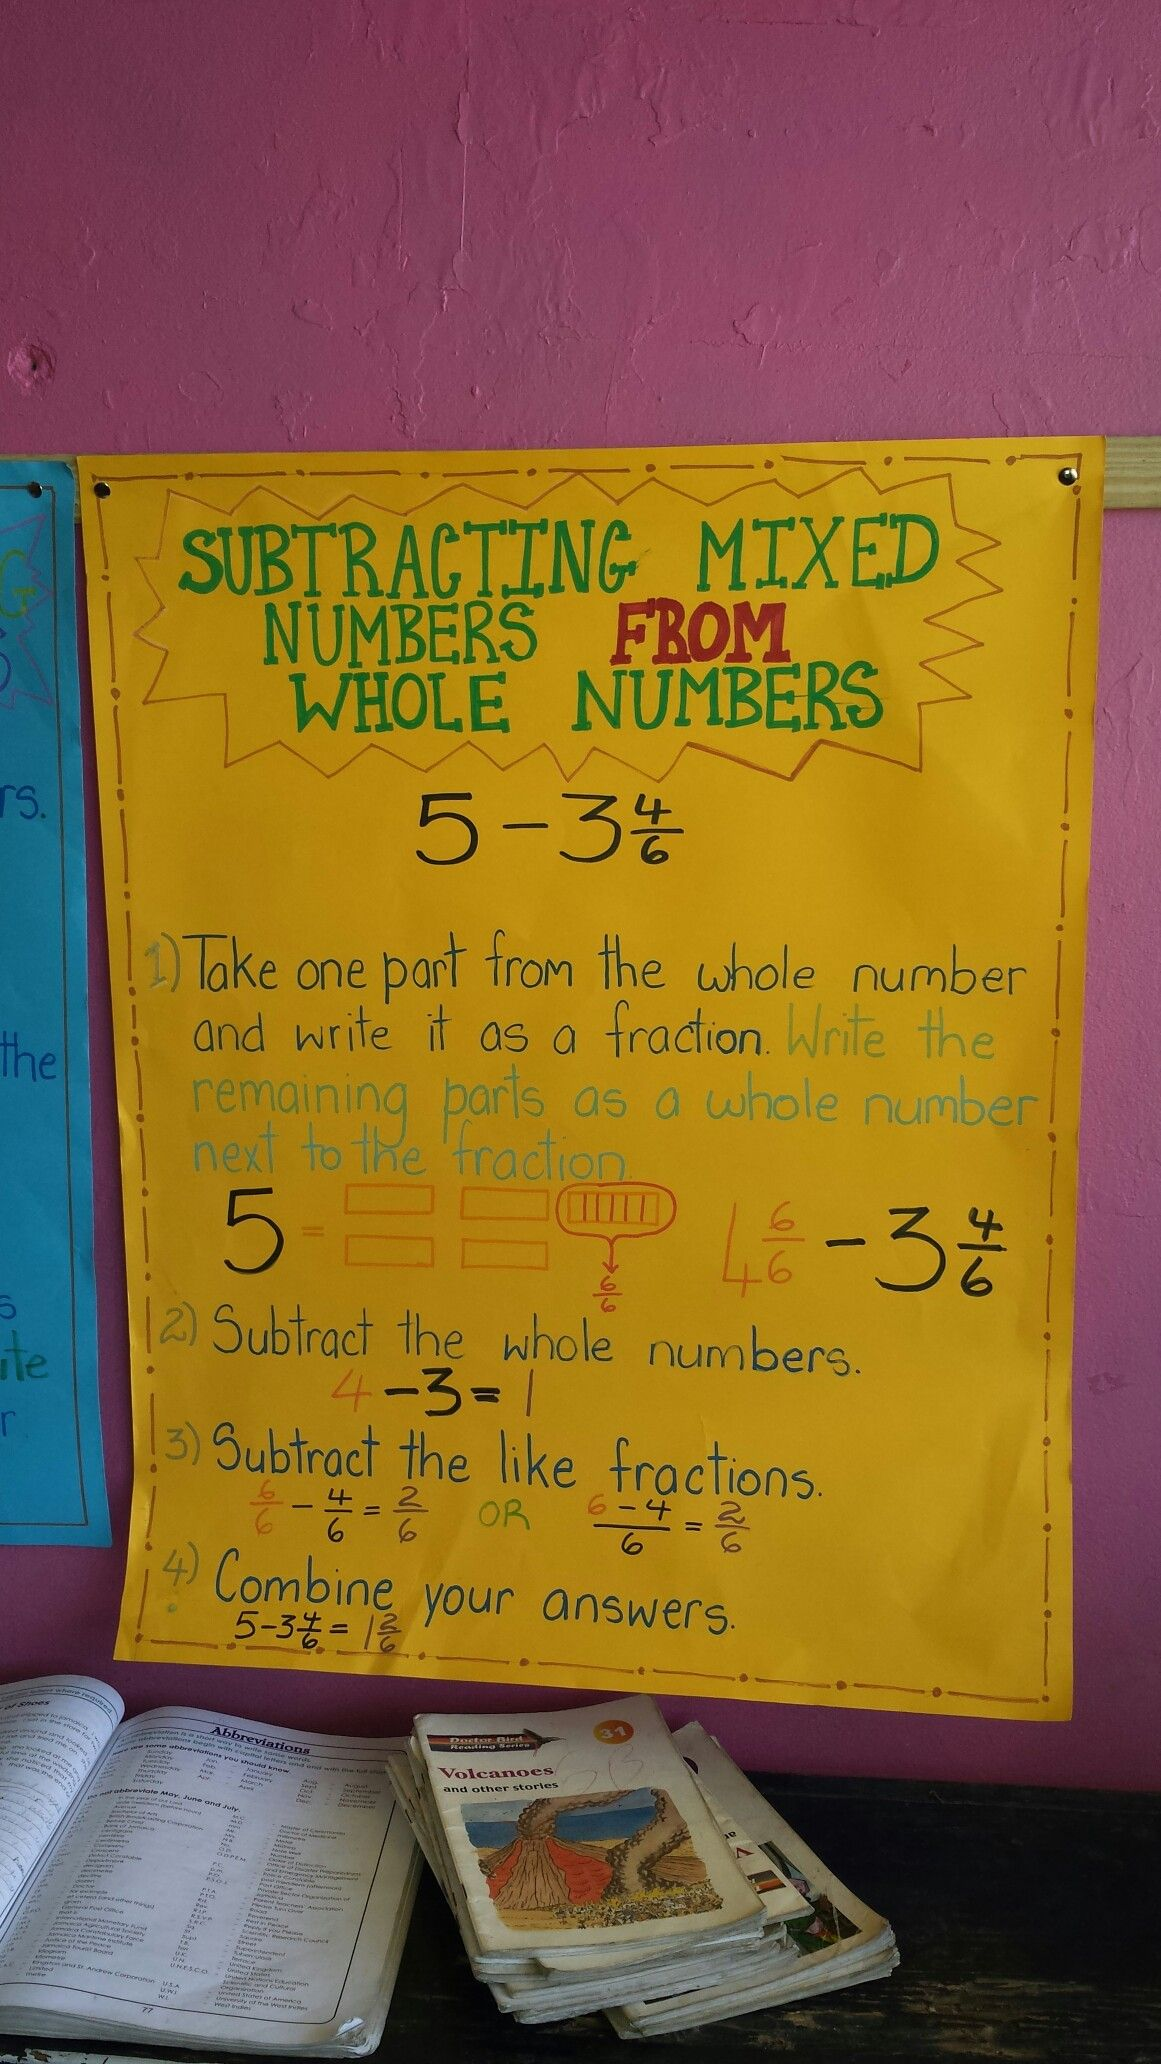 Mixednumbers Subtraction With Images